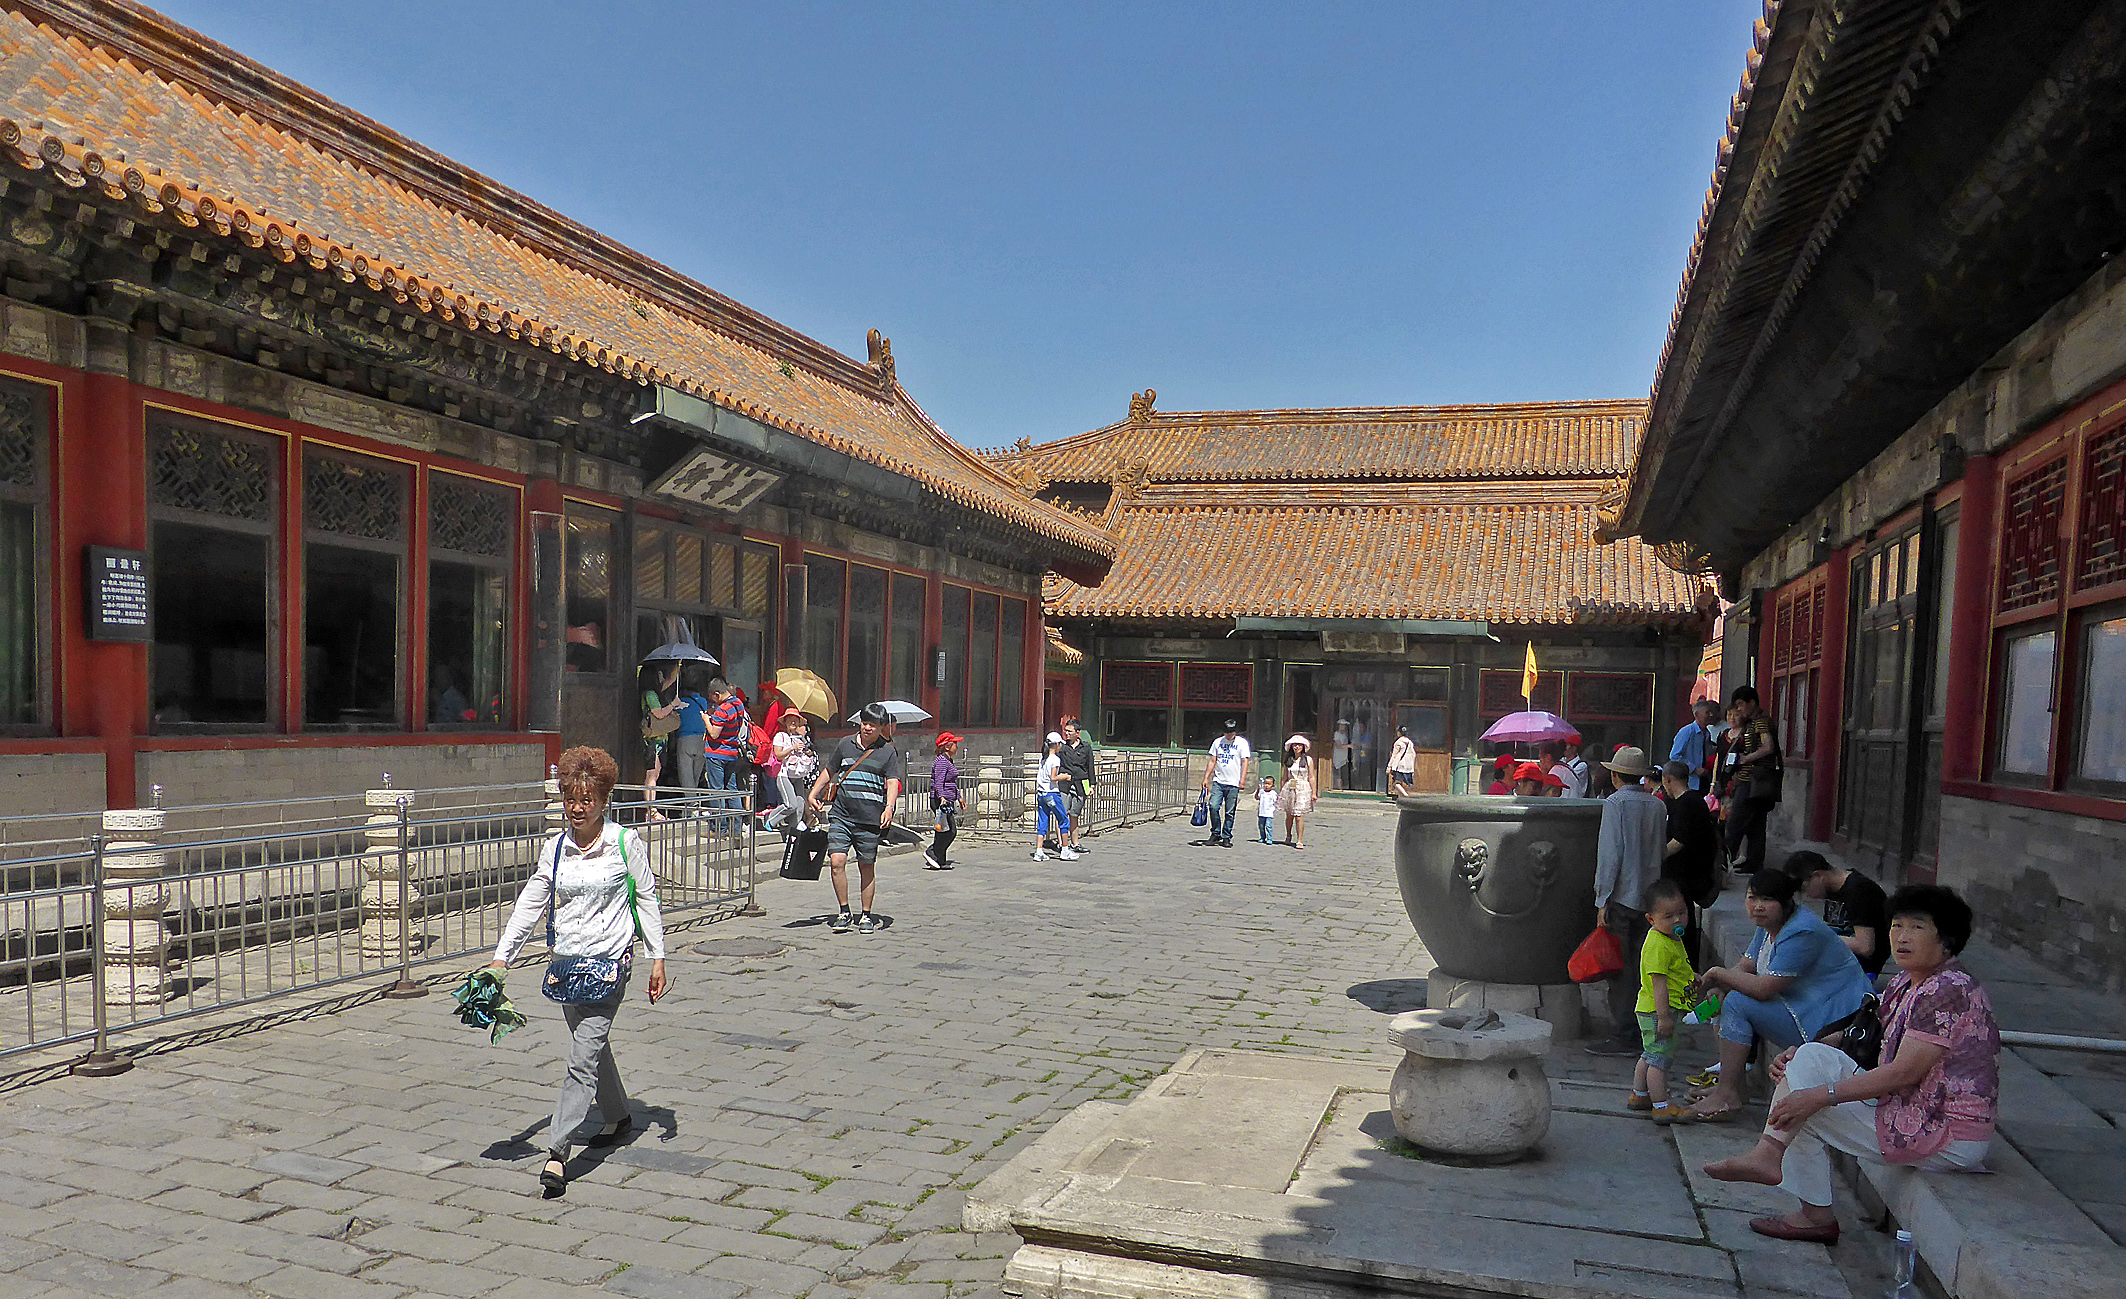 Cixi's Hall 0666: Beijing Forbidden city, Palace of Gathering Elegance.